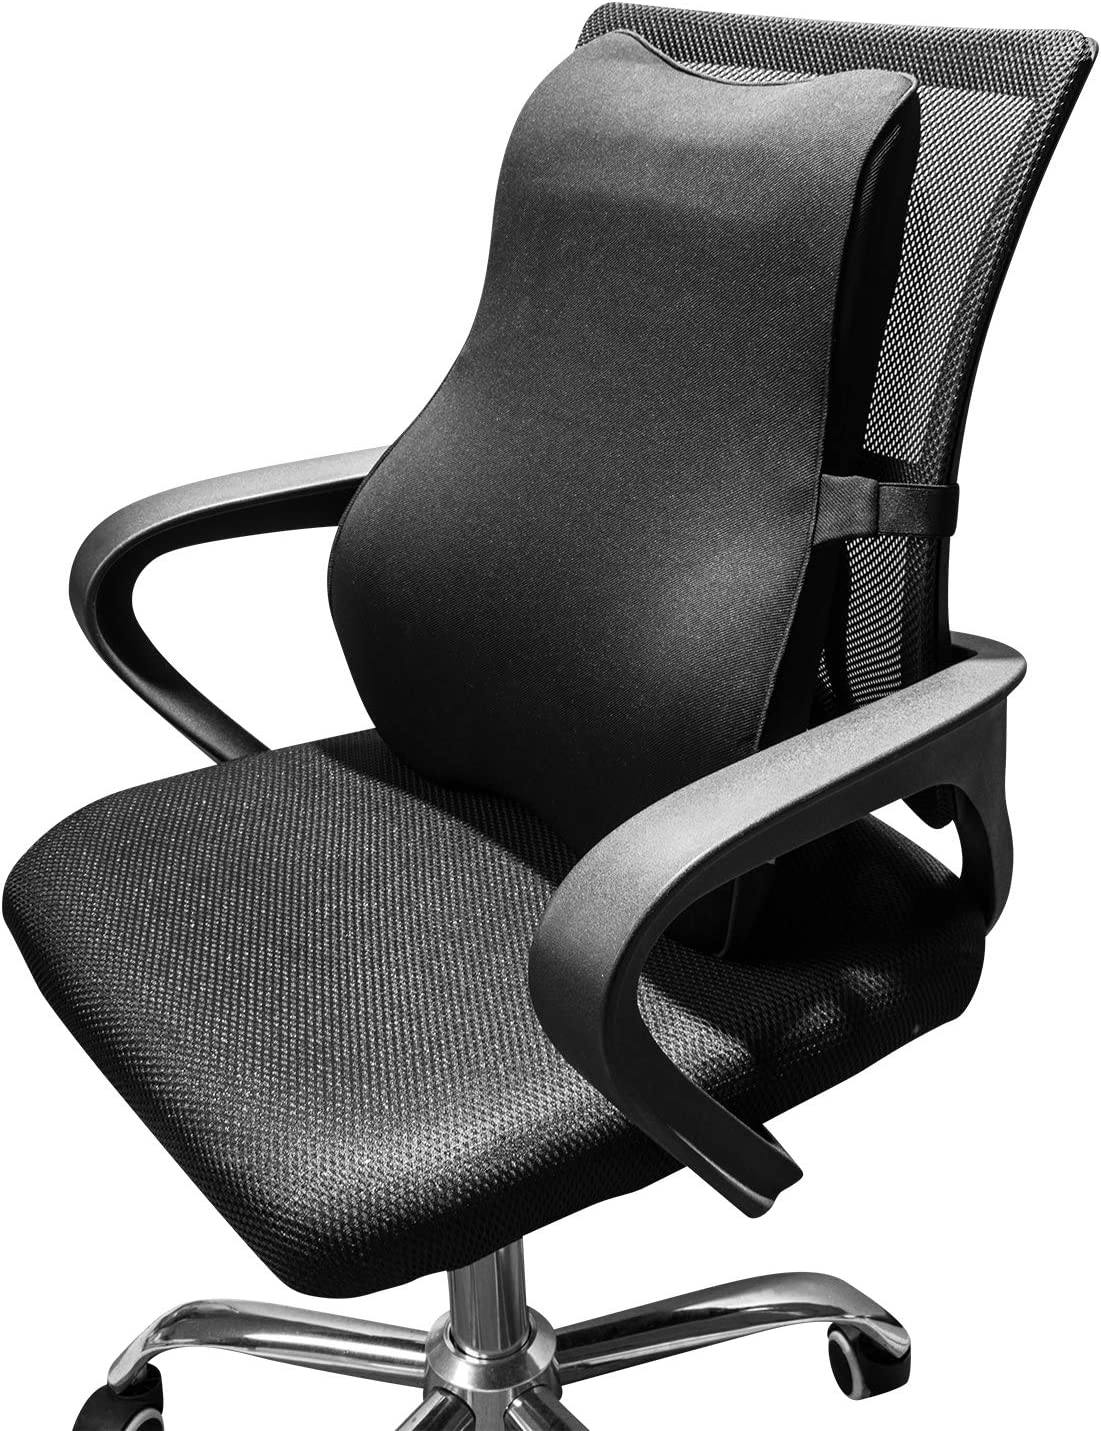 Dreamer Car Ergonomic Back Support for Car Designed for Full Lumbar Support and Back Pain Relief- High Density Memory Foam Lumbar Support for Car with Adjustable Strap for Office Chair/Computer,Black